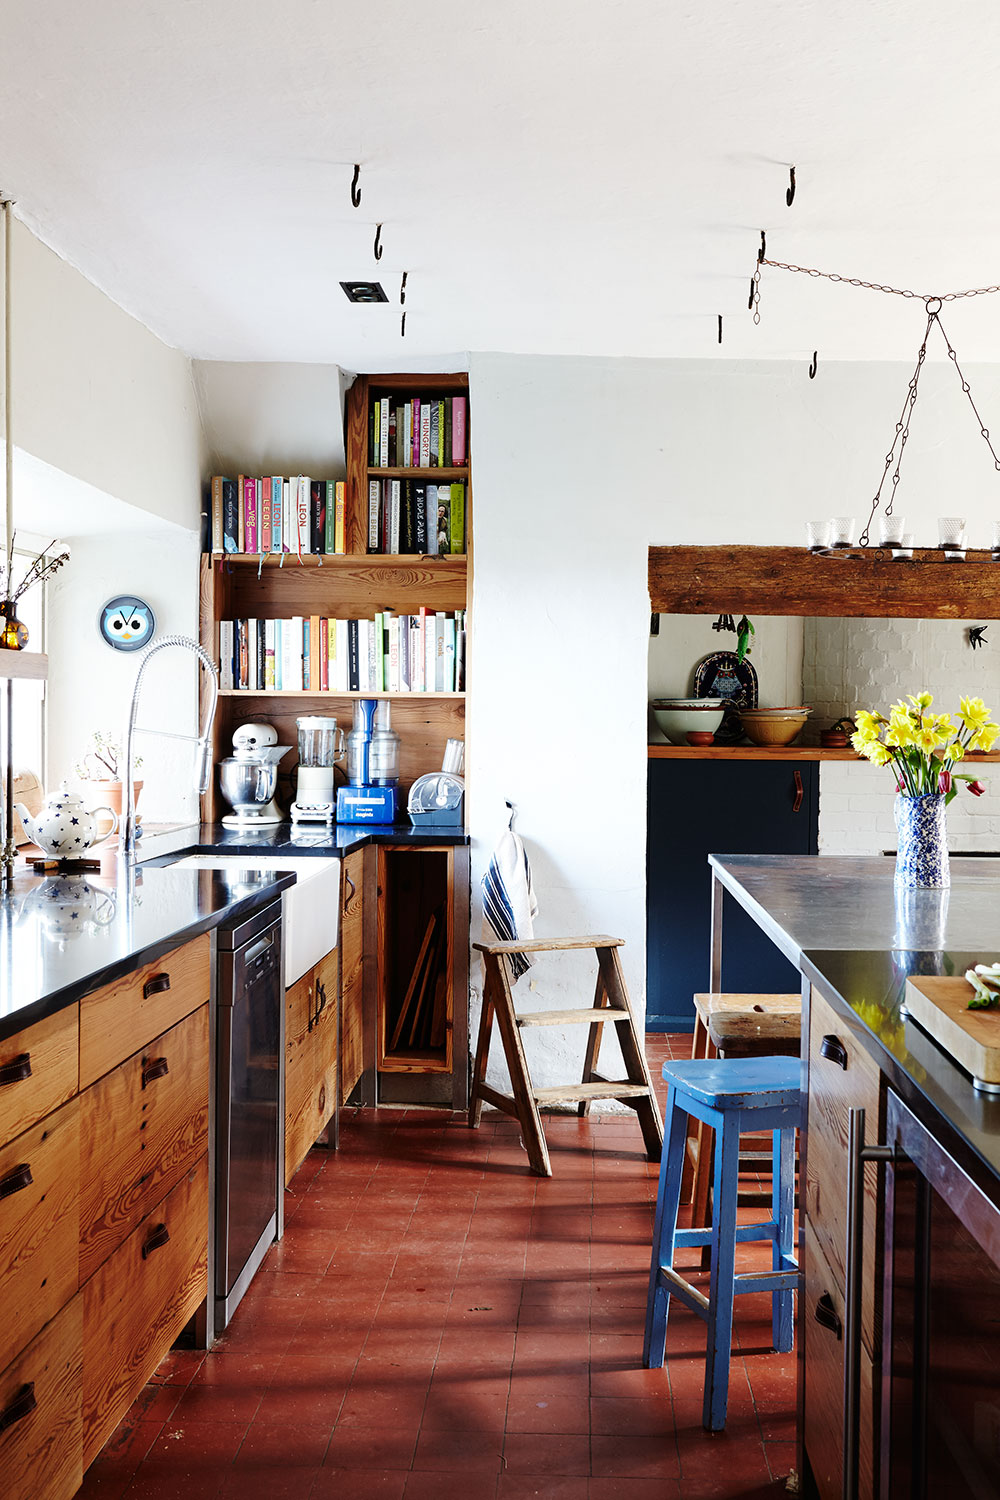 DoLectures_Cardigan_kitchen_027.jpg